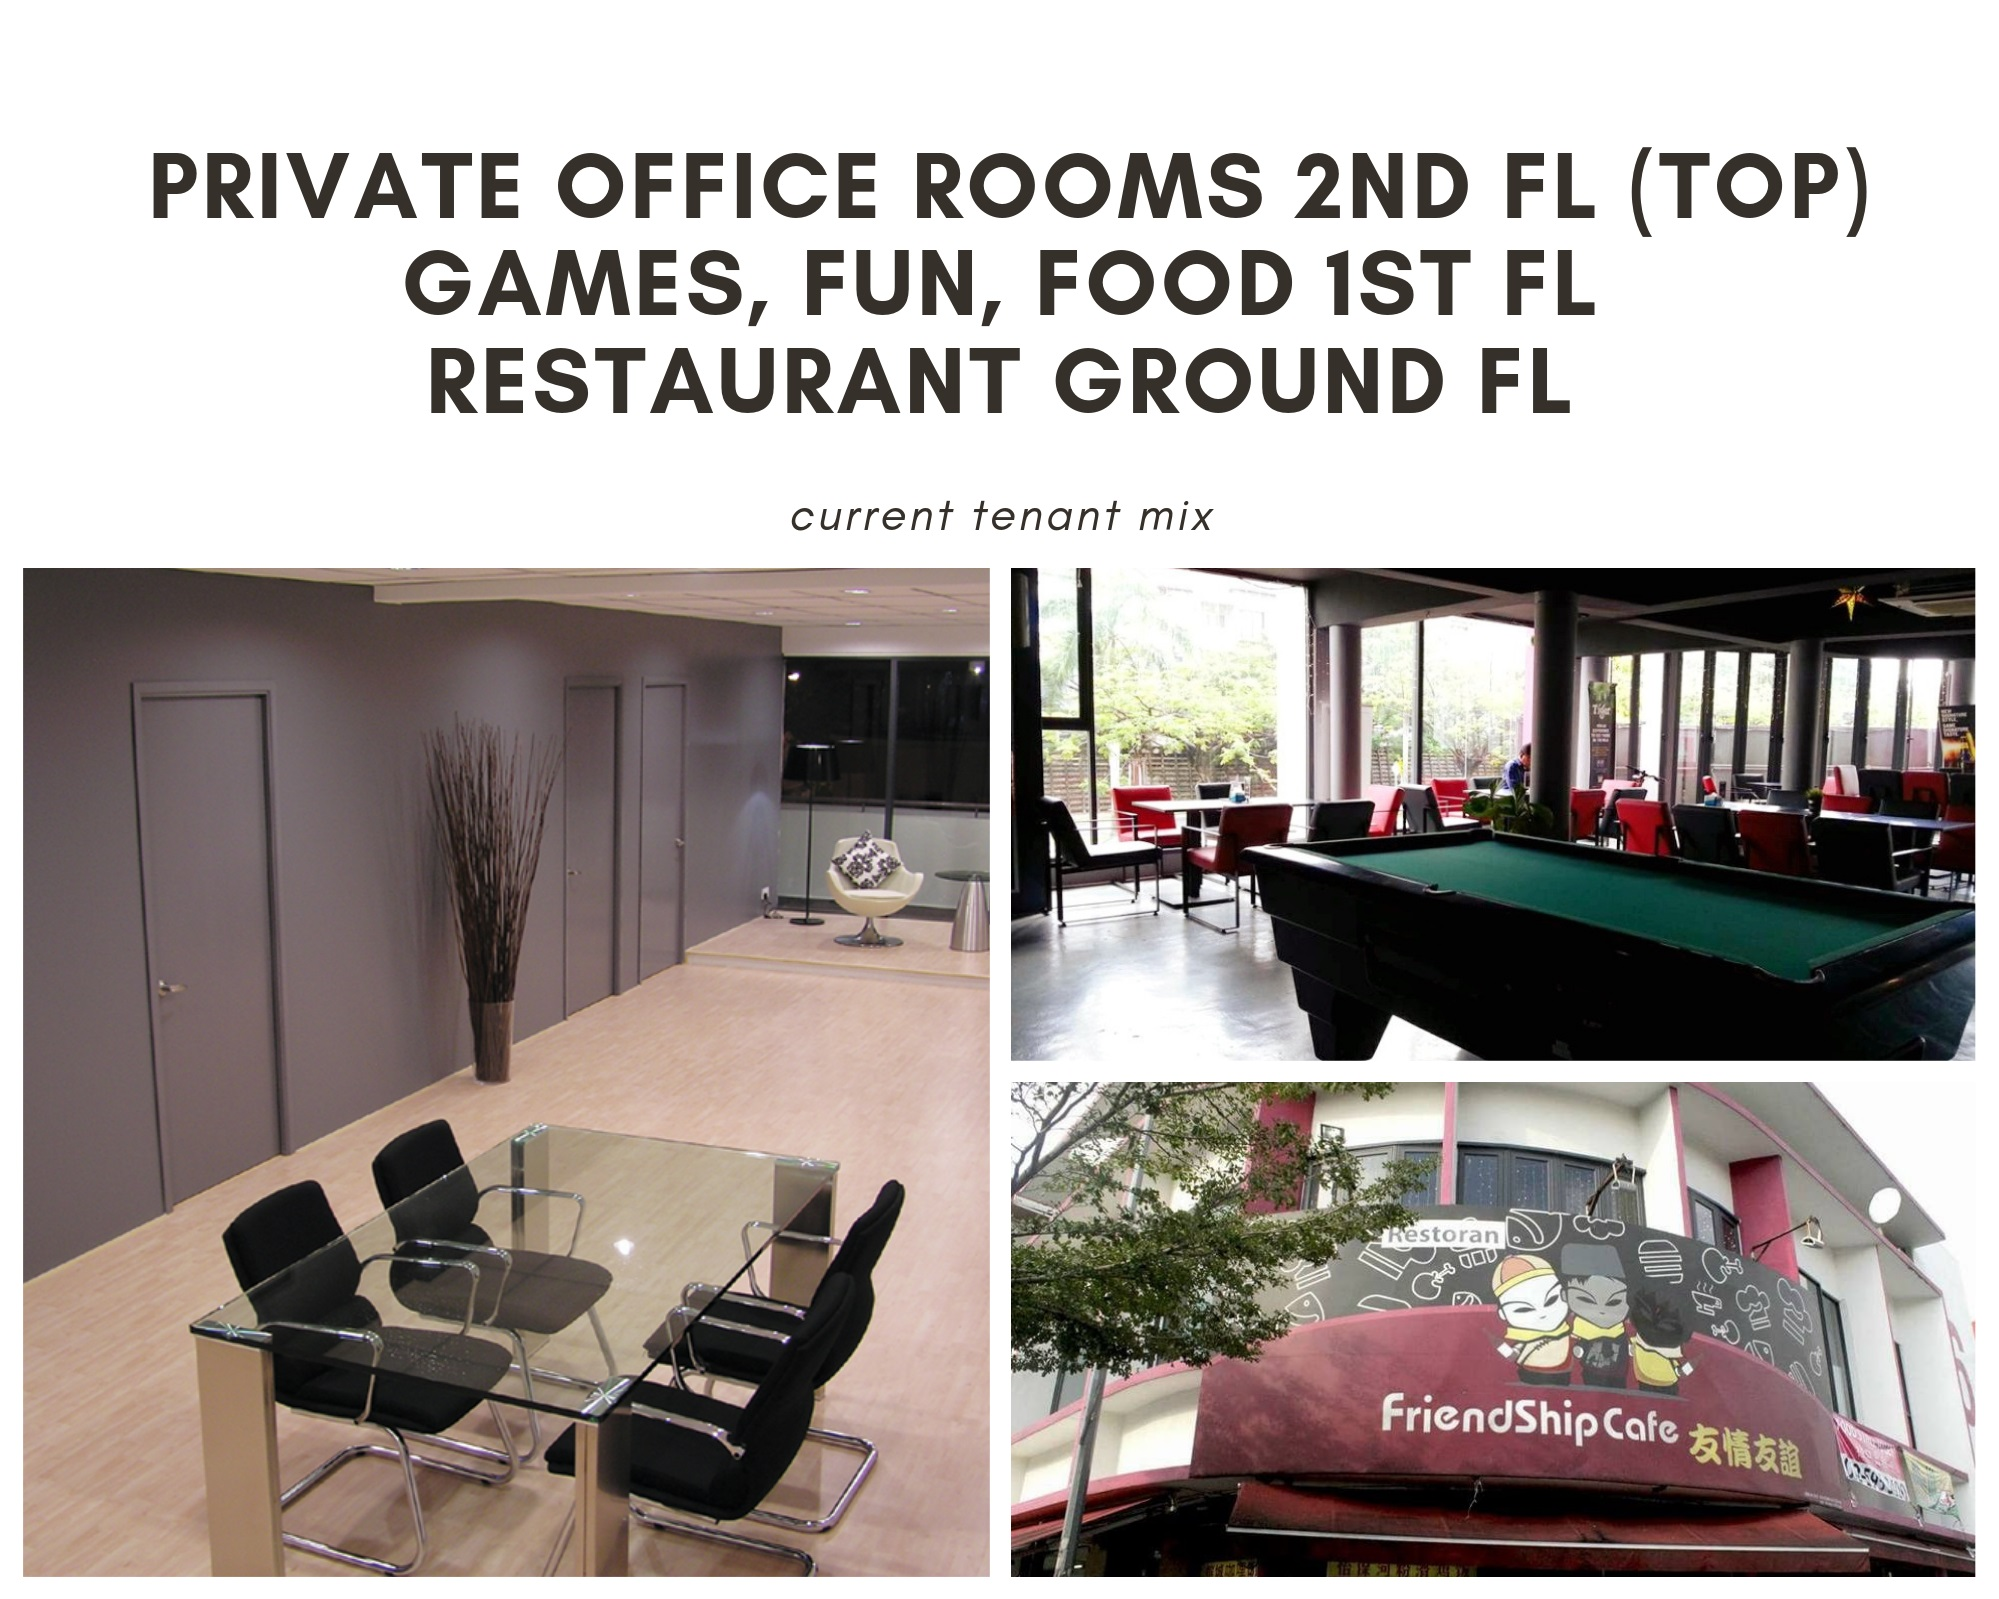 Small Office Shared Office For Rent In Klang Valley Kuala Lumpur Malaysia 9 Private Office Room For Rent At Bukit Jalil In Klang Valley Kuala Lumpur Malaysia Furnished And